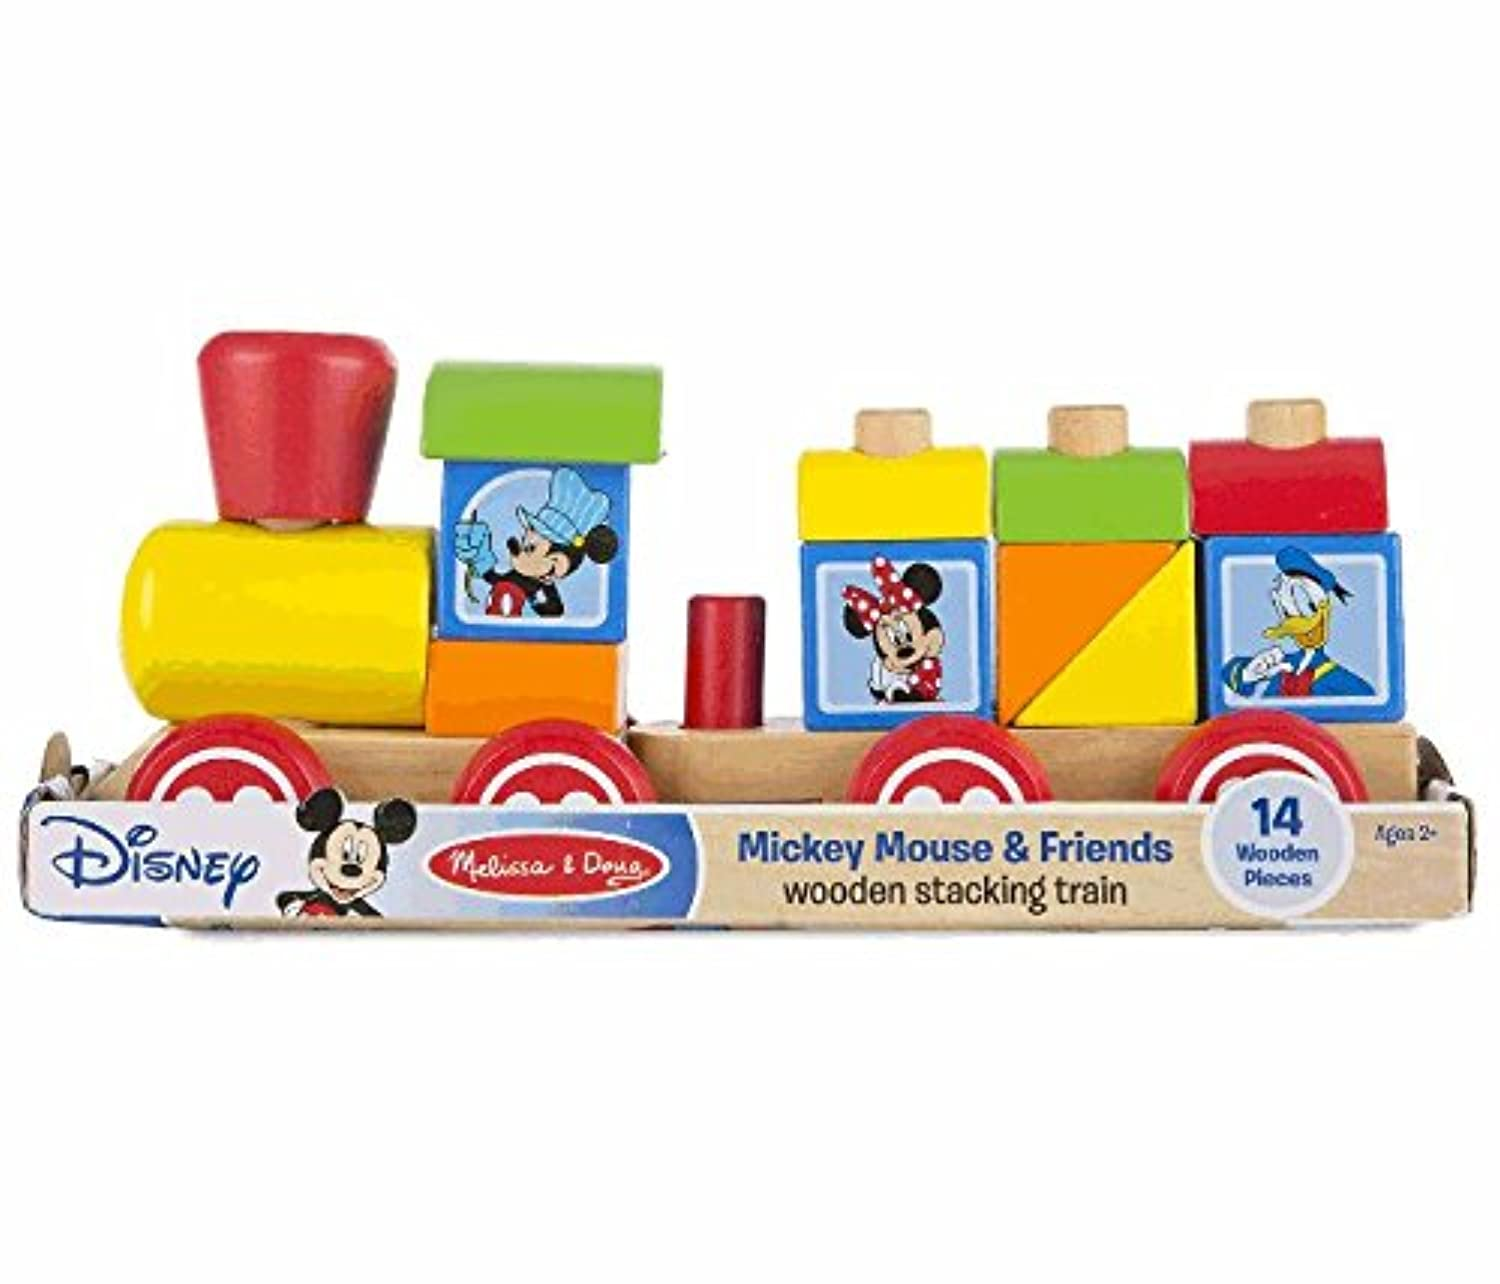 Disney(ディズニー) Mickey Mouse and Friends Wooden Stacking Train by Melissa & Doug ミッキー?マウスのスタッキング列車 メリッサ&ダグ 【並行輸入品】